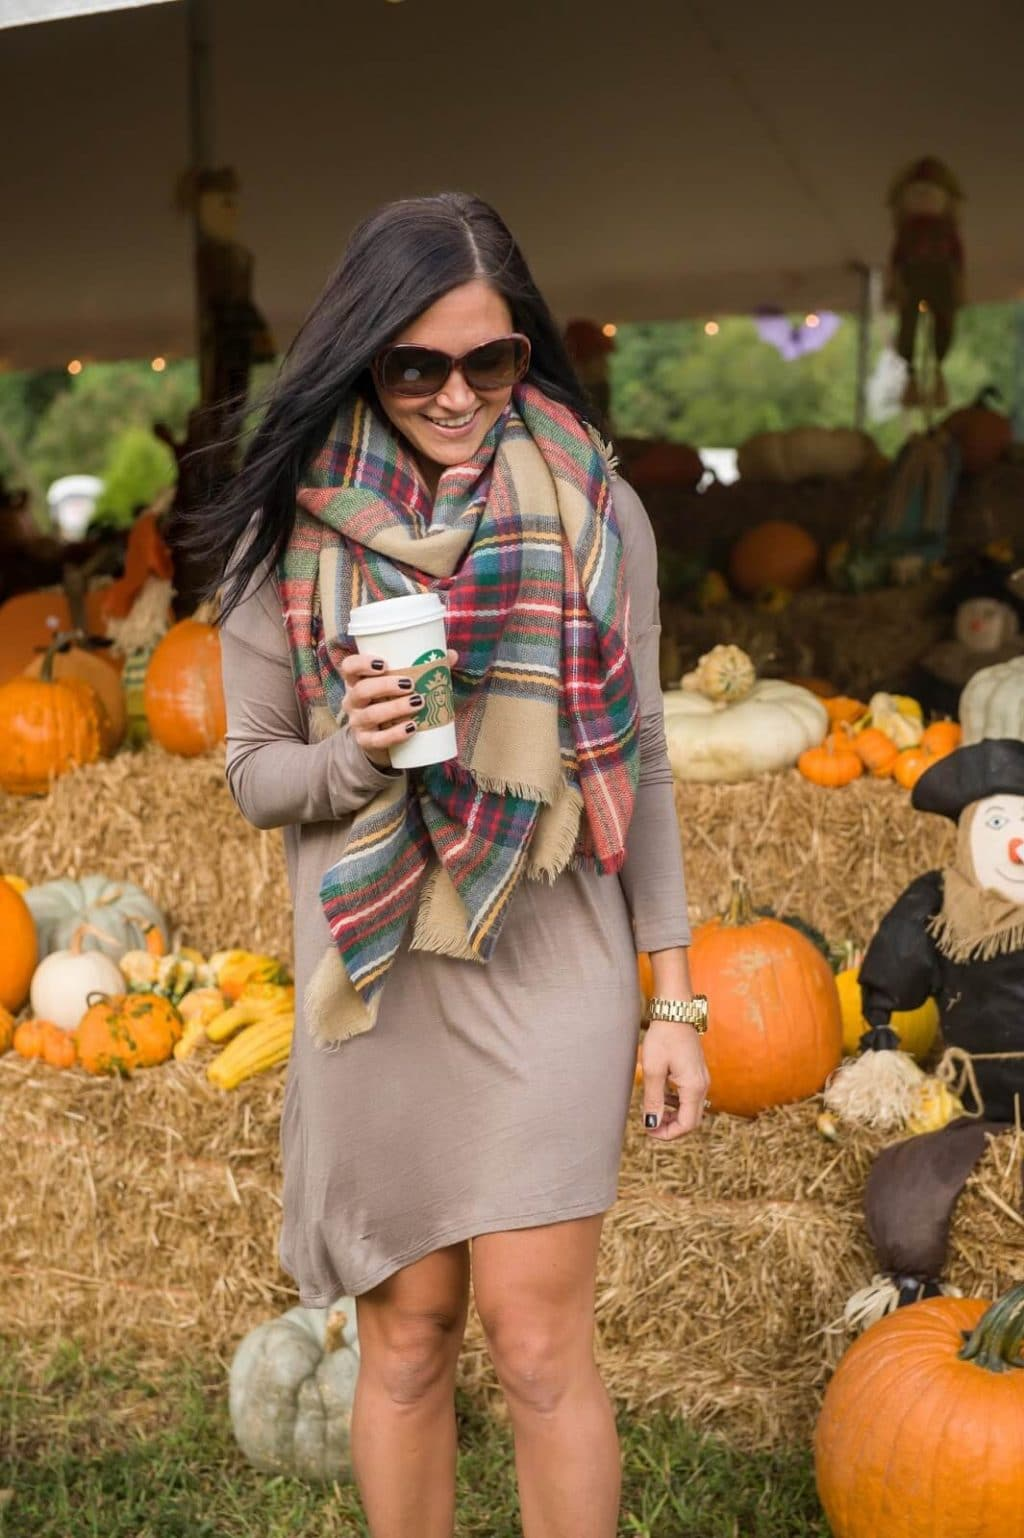 Pumpkin patch, fall style